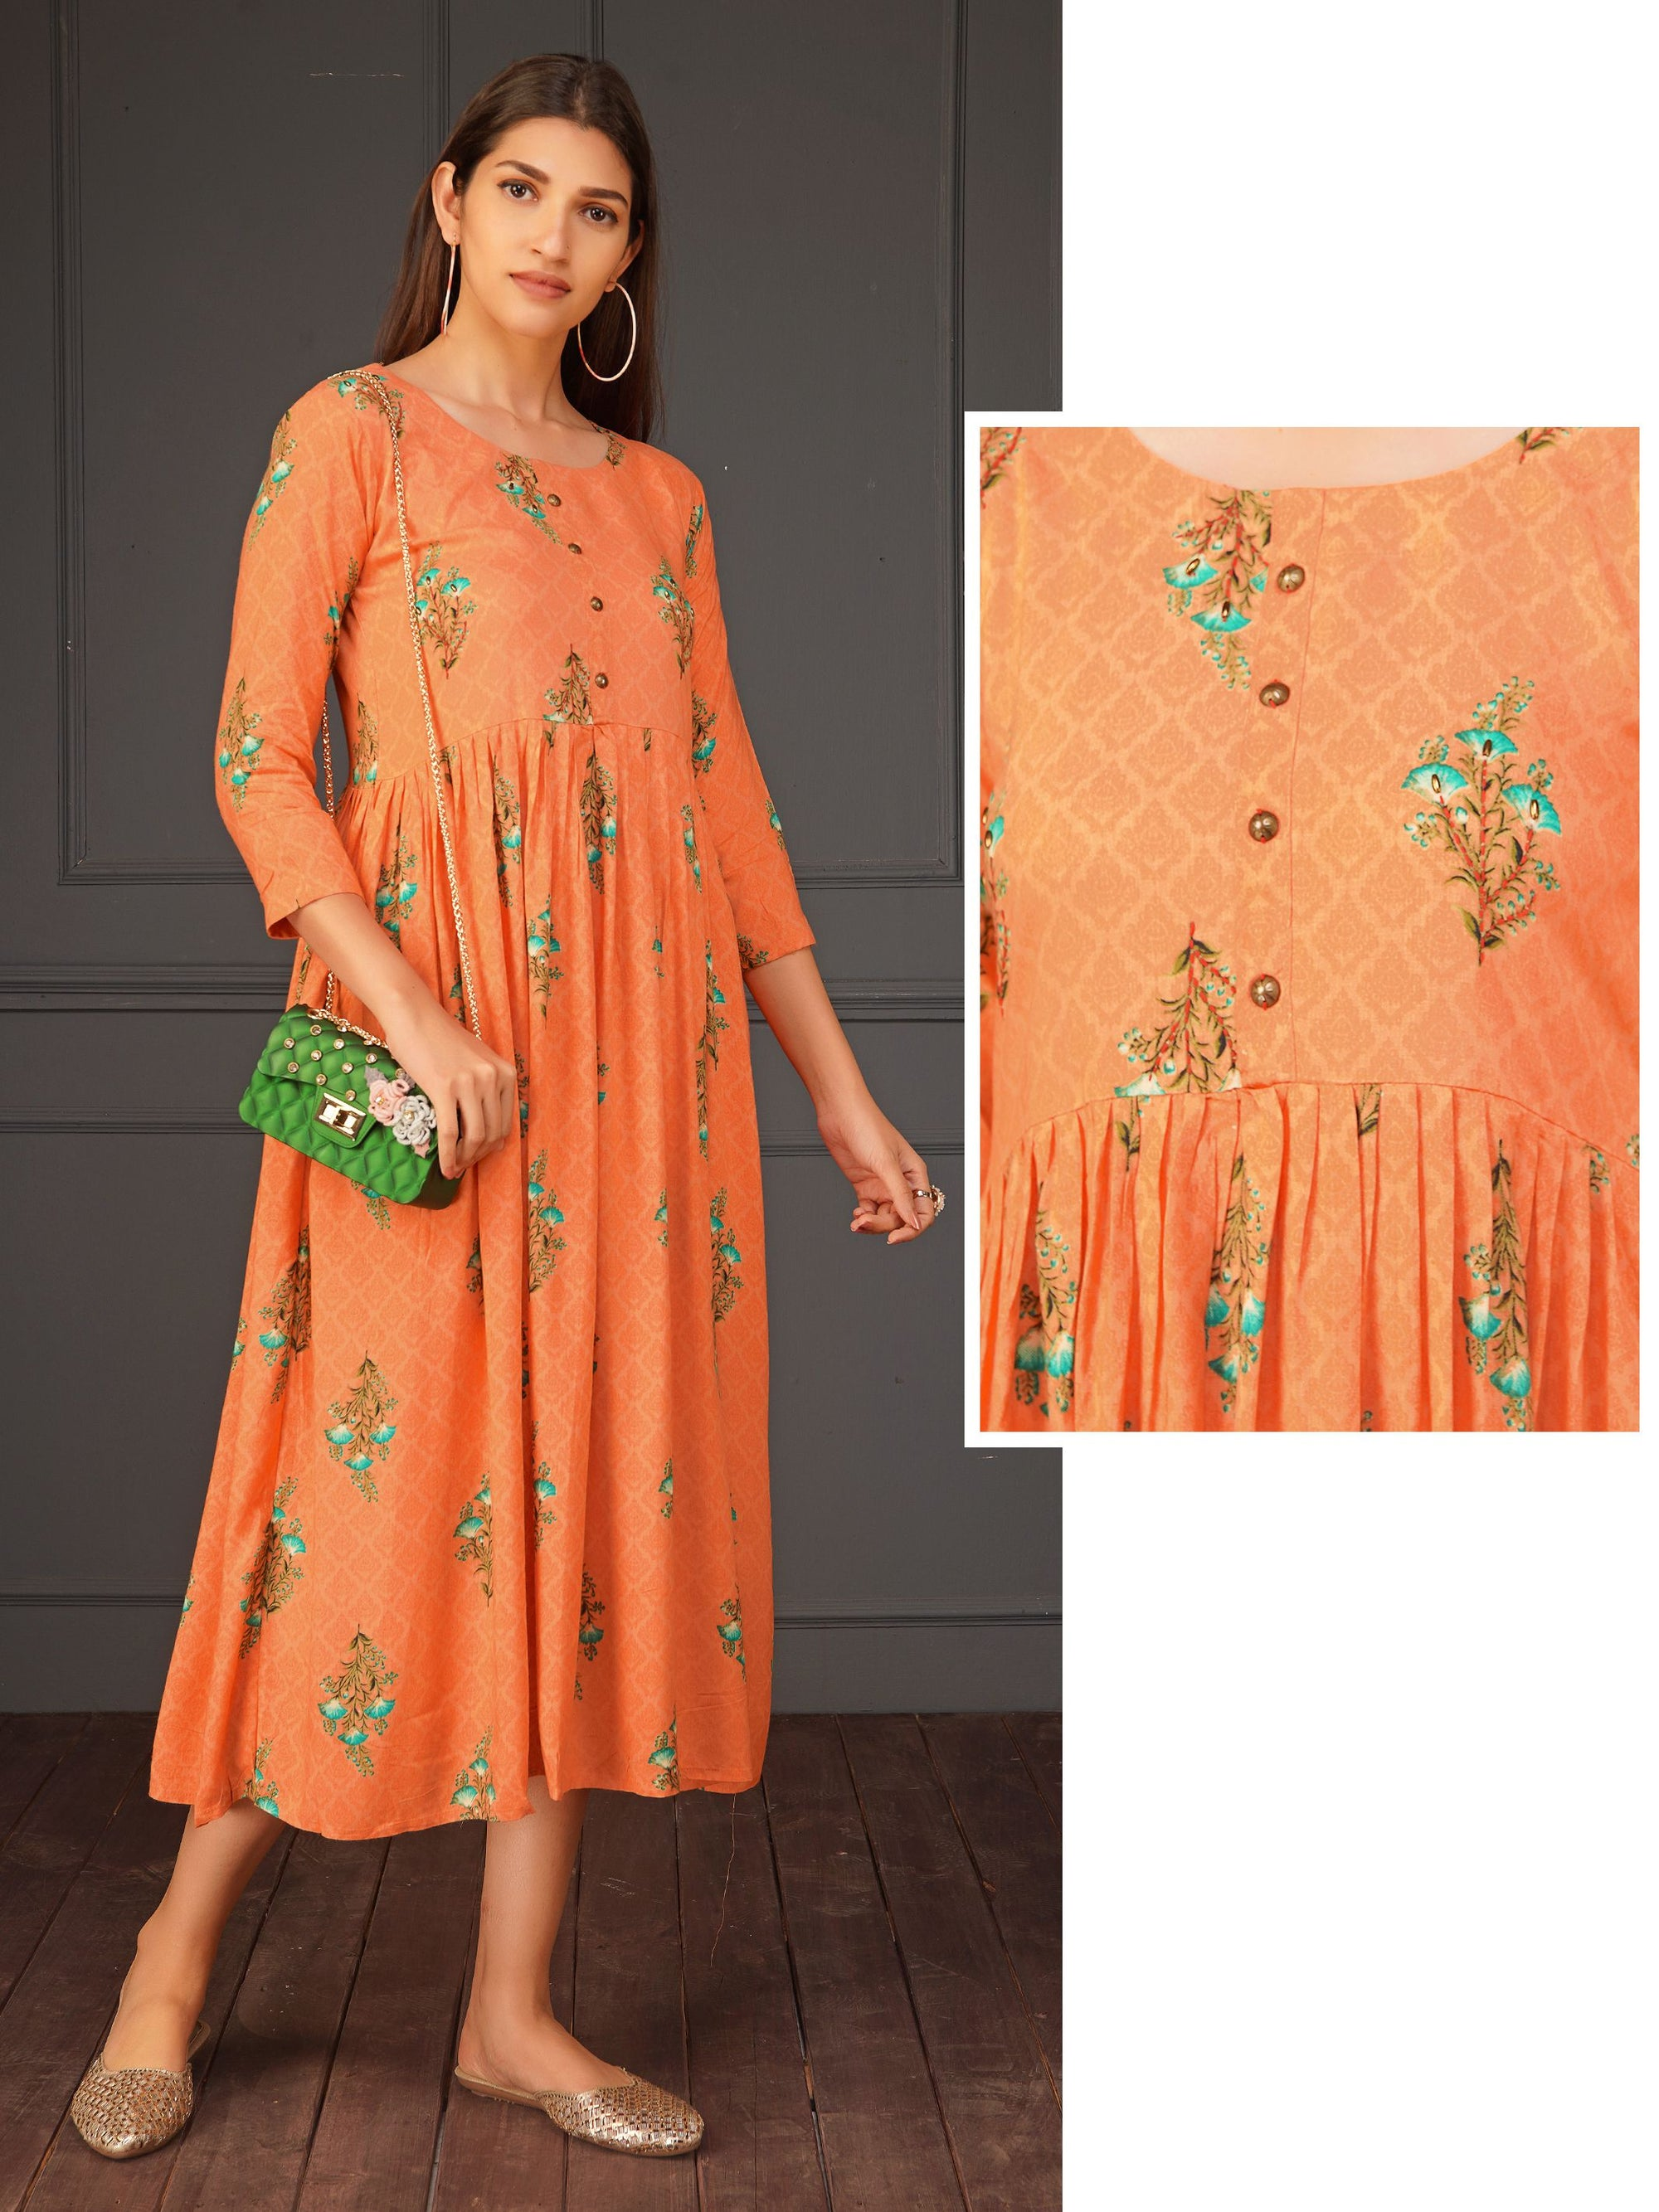 Chic Floral Print With Running Stitch A-line Dress - Peach